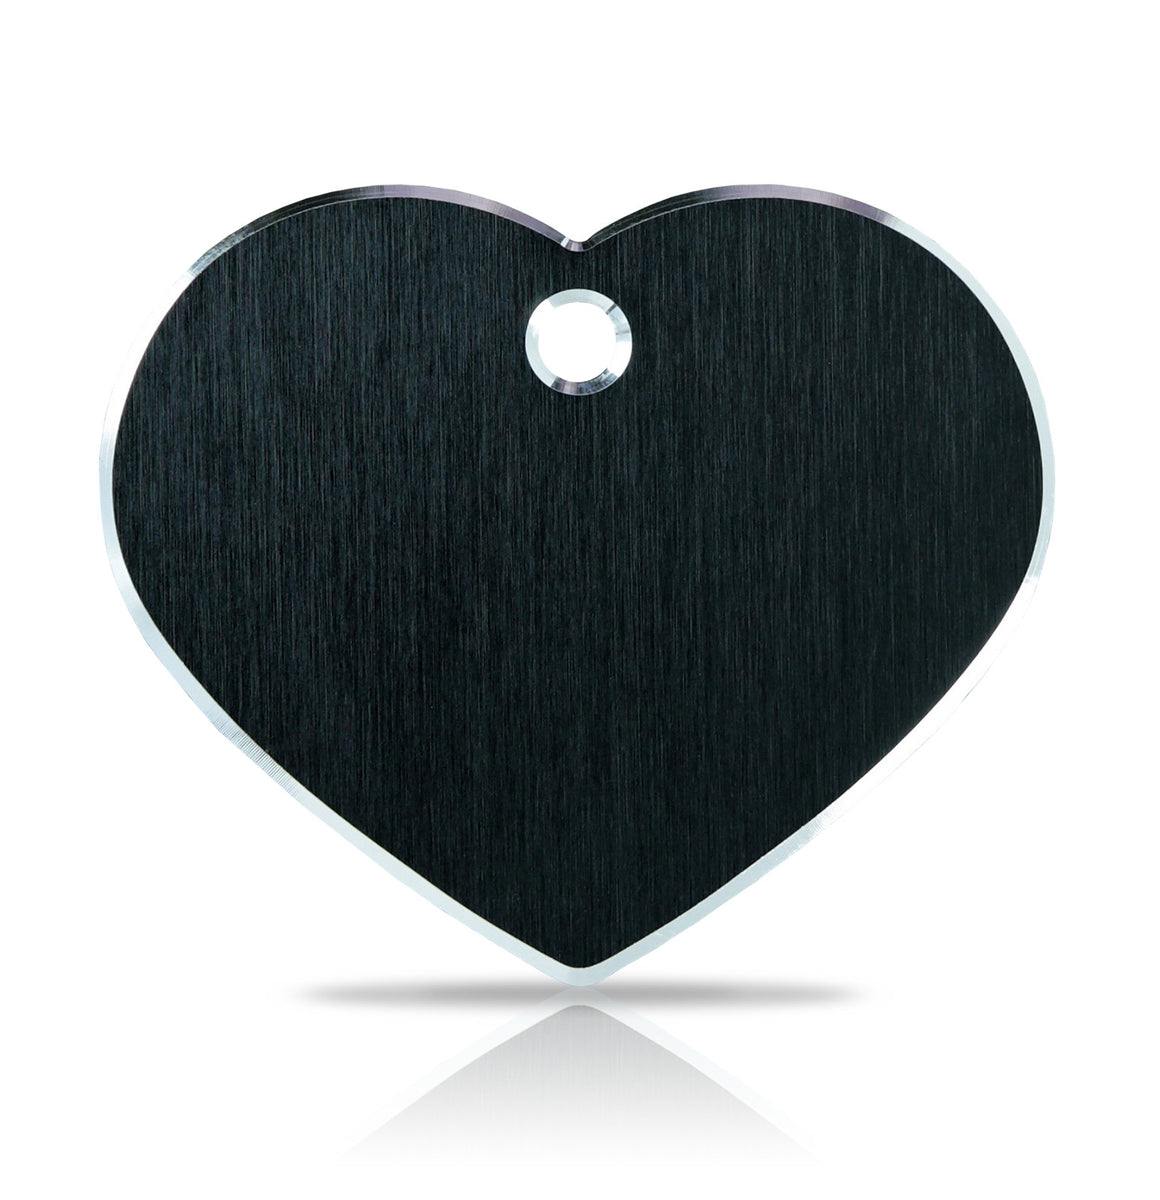 TaggIT Hi-Line Aluminium Large Heart Black iMarc Pet Tag